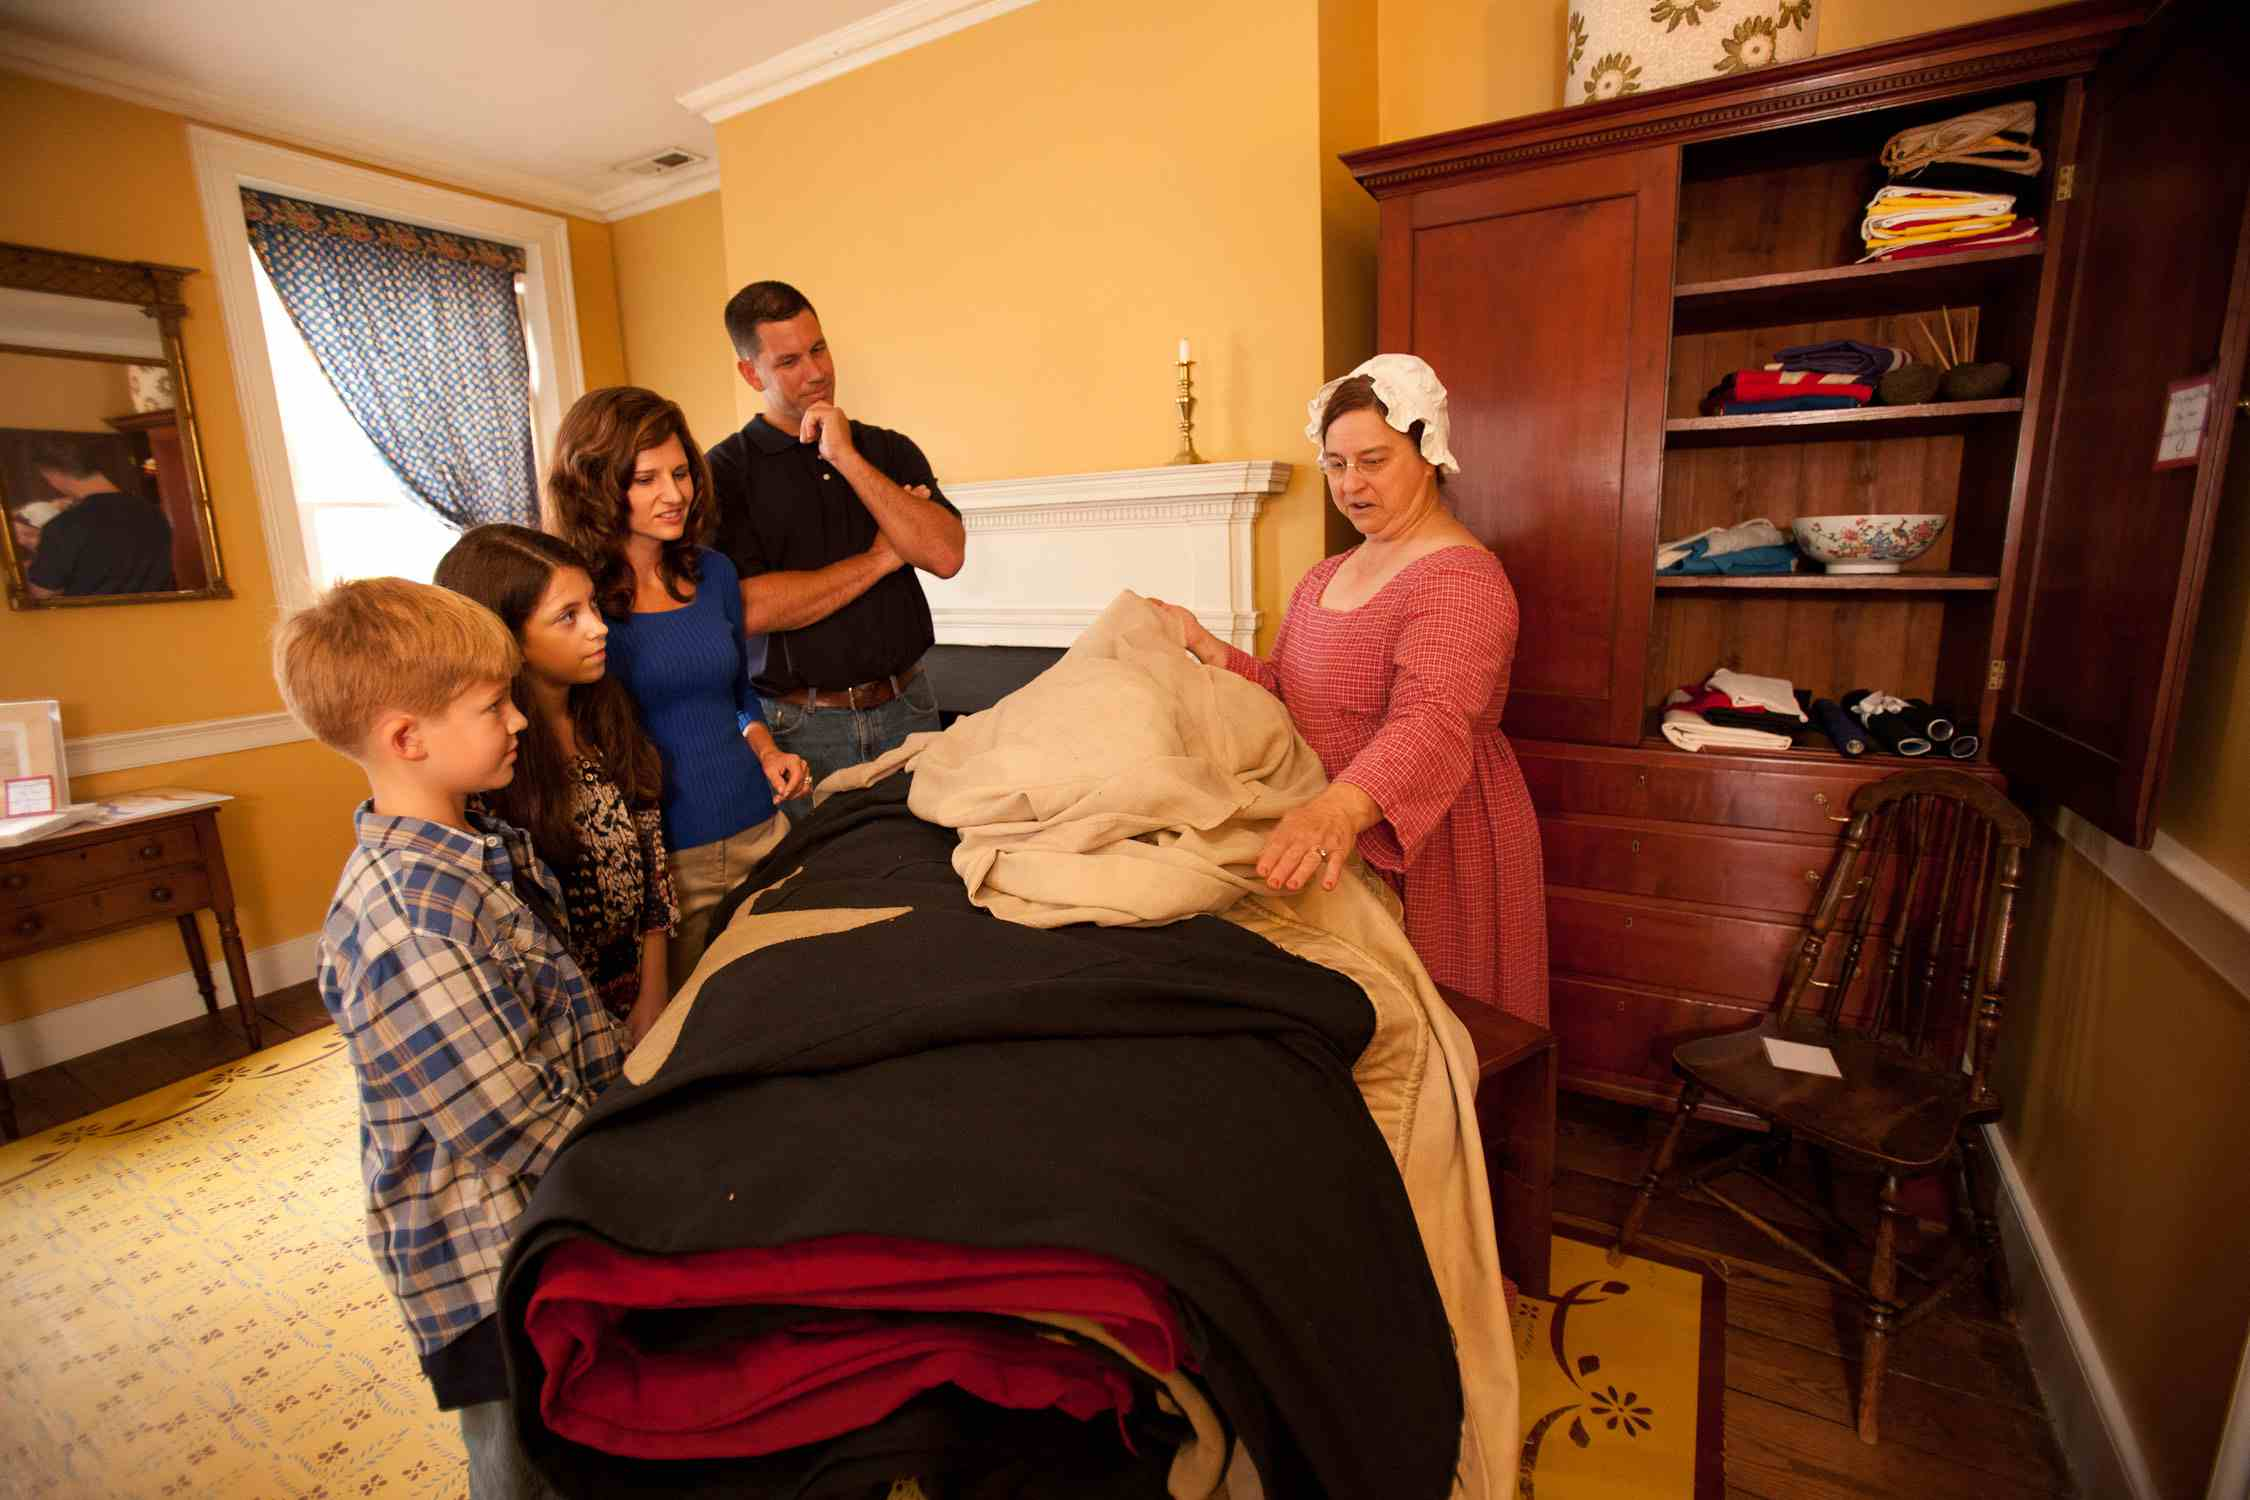 At Baltimore's Flag House Museum, a curator reenacts the role of Mary Pickersgill.